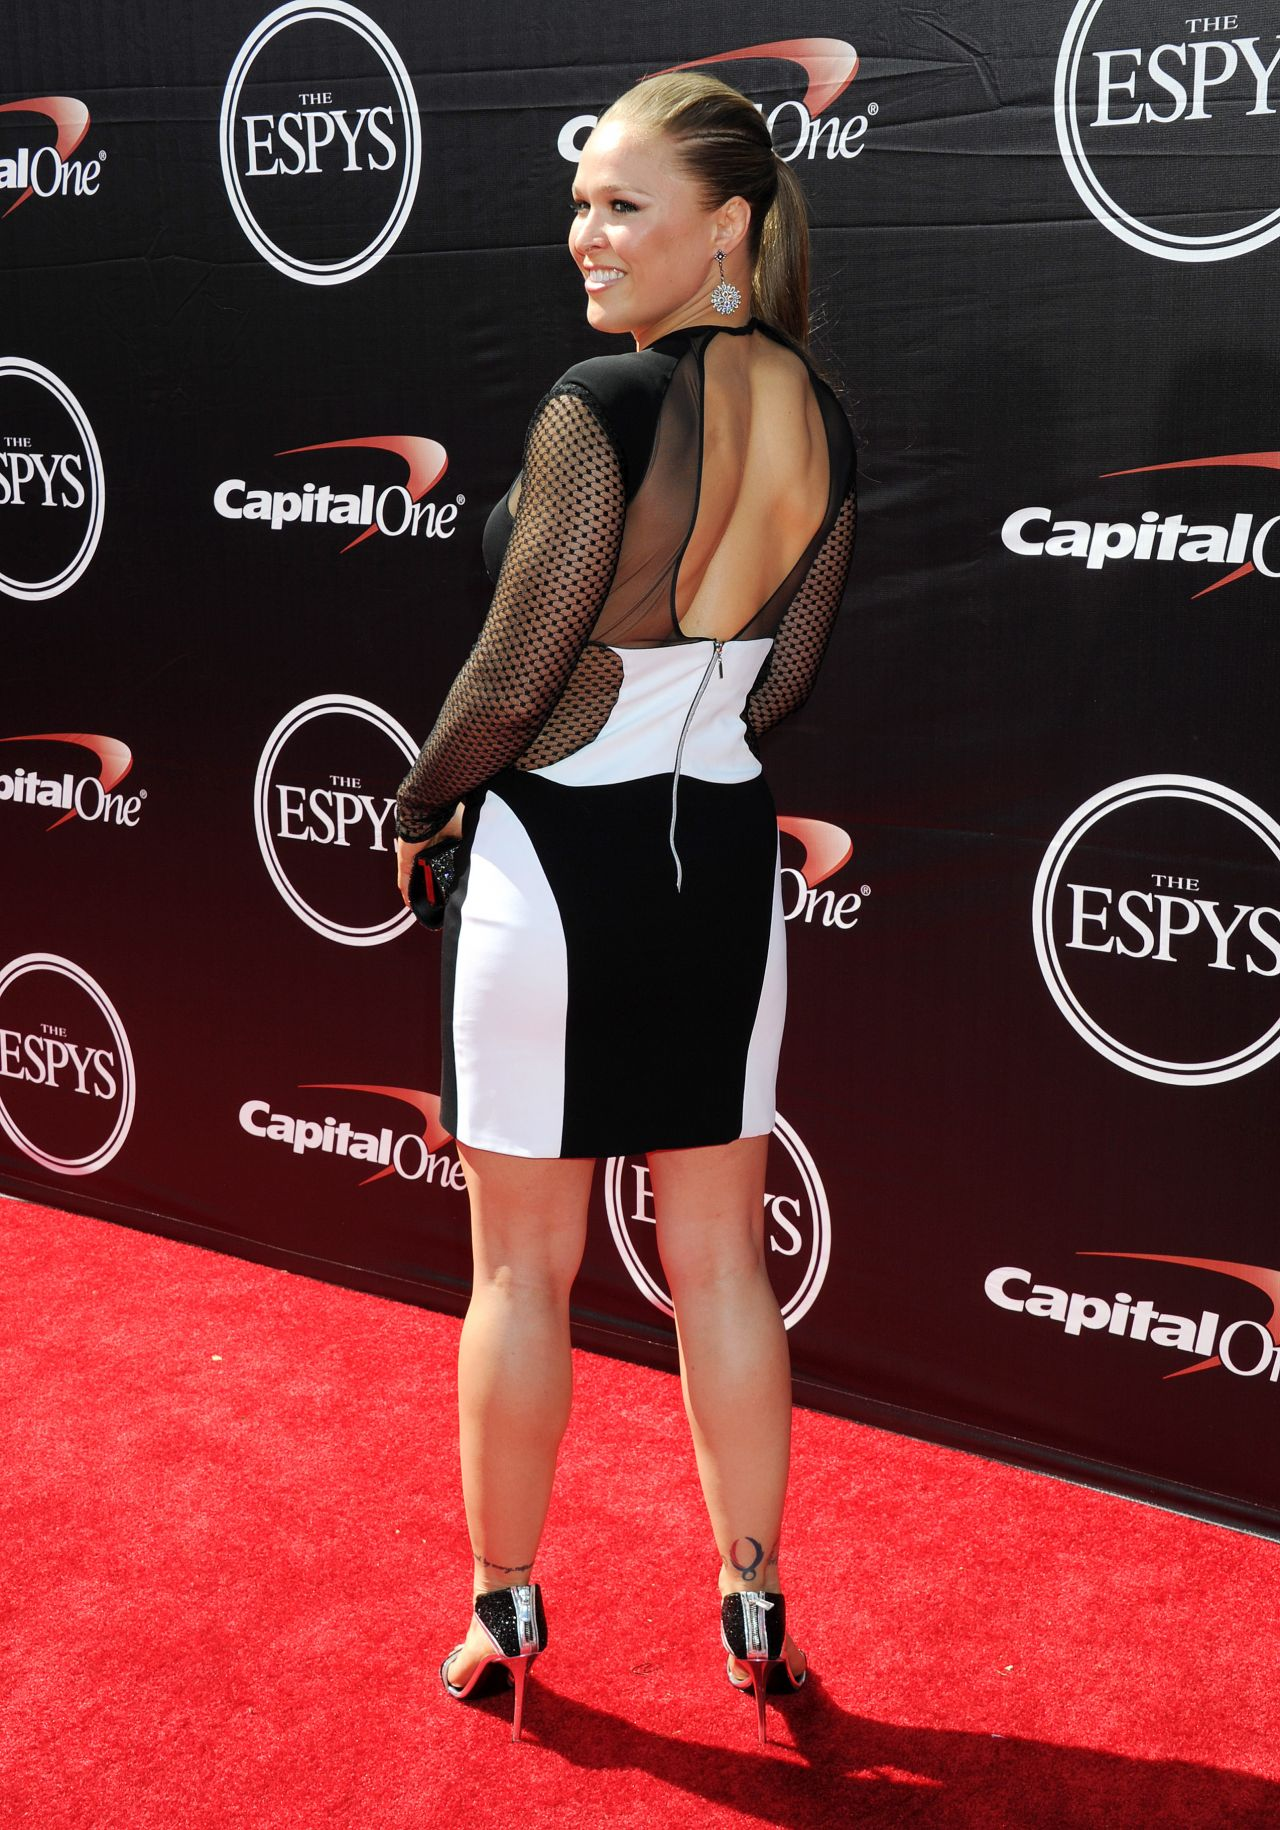 Ronda Rousey Is Hot 2015 ESPYS In Los Angeles